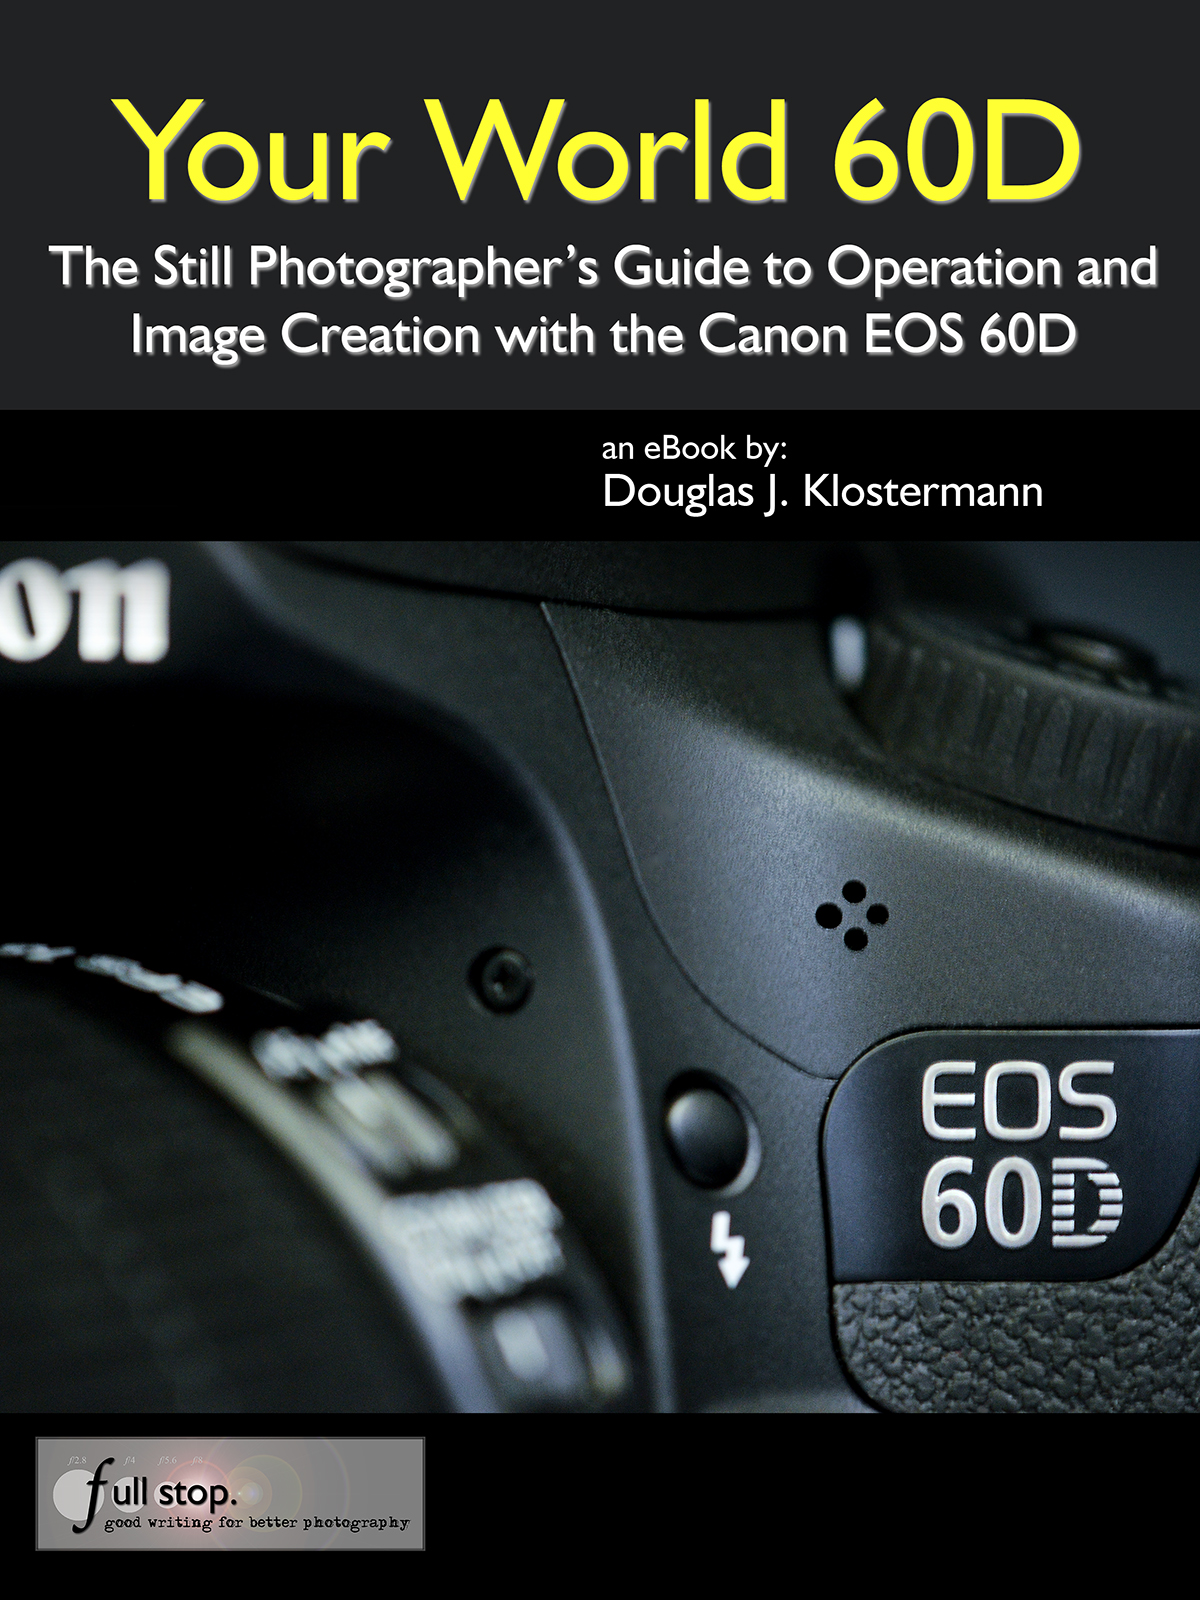 Your World 60D - The Still Photographer's Guide to Operation and Image Creation with the Canon EOS 60D